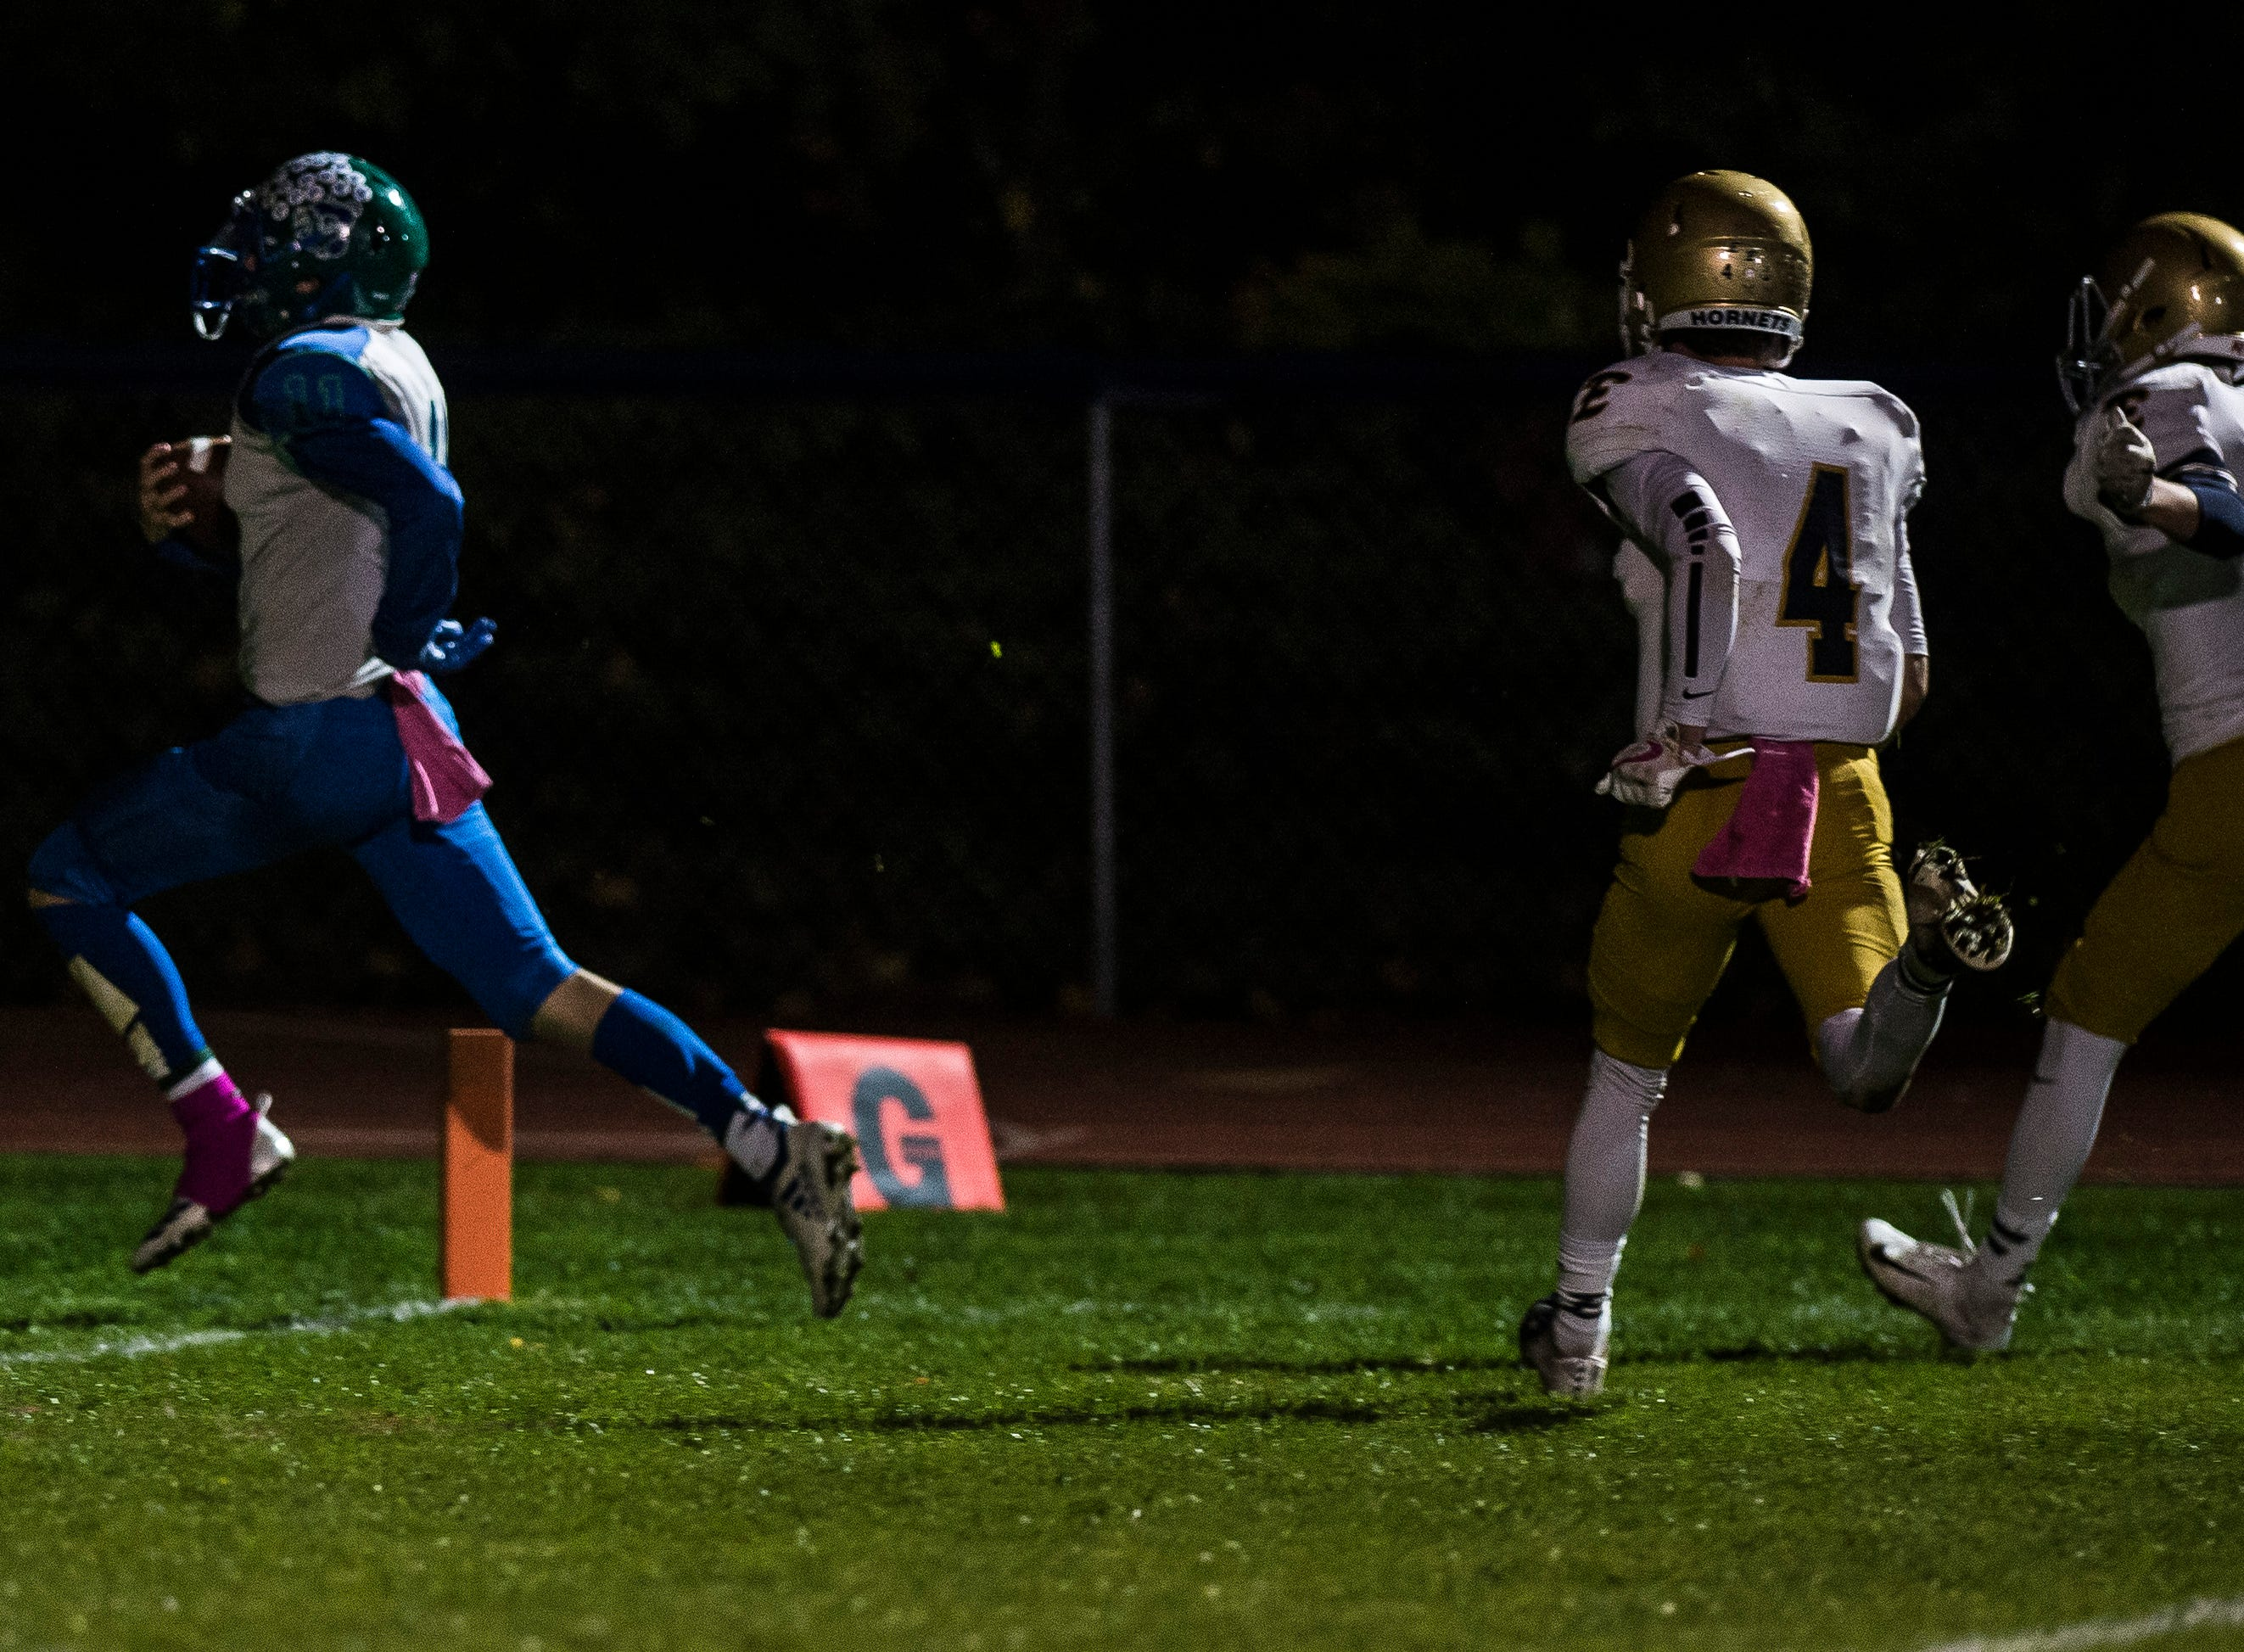 Colchester #11 Bailey Olson sails into the end zone for the touchdown after a long-distance run during their football game against Essex Friday night, Oct. 5, 2018, at Colchester High School. The Lakers won, 28-7.